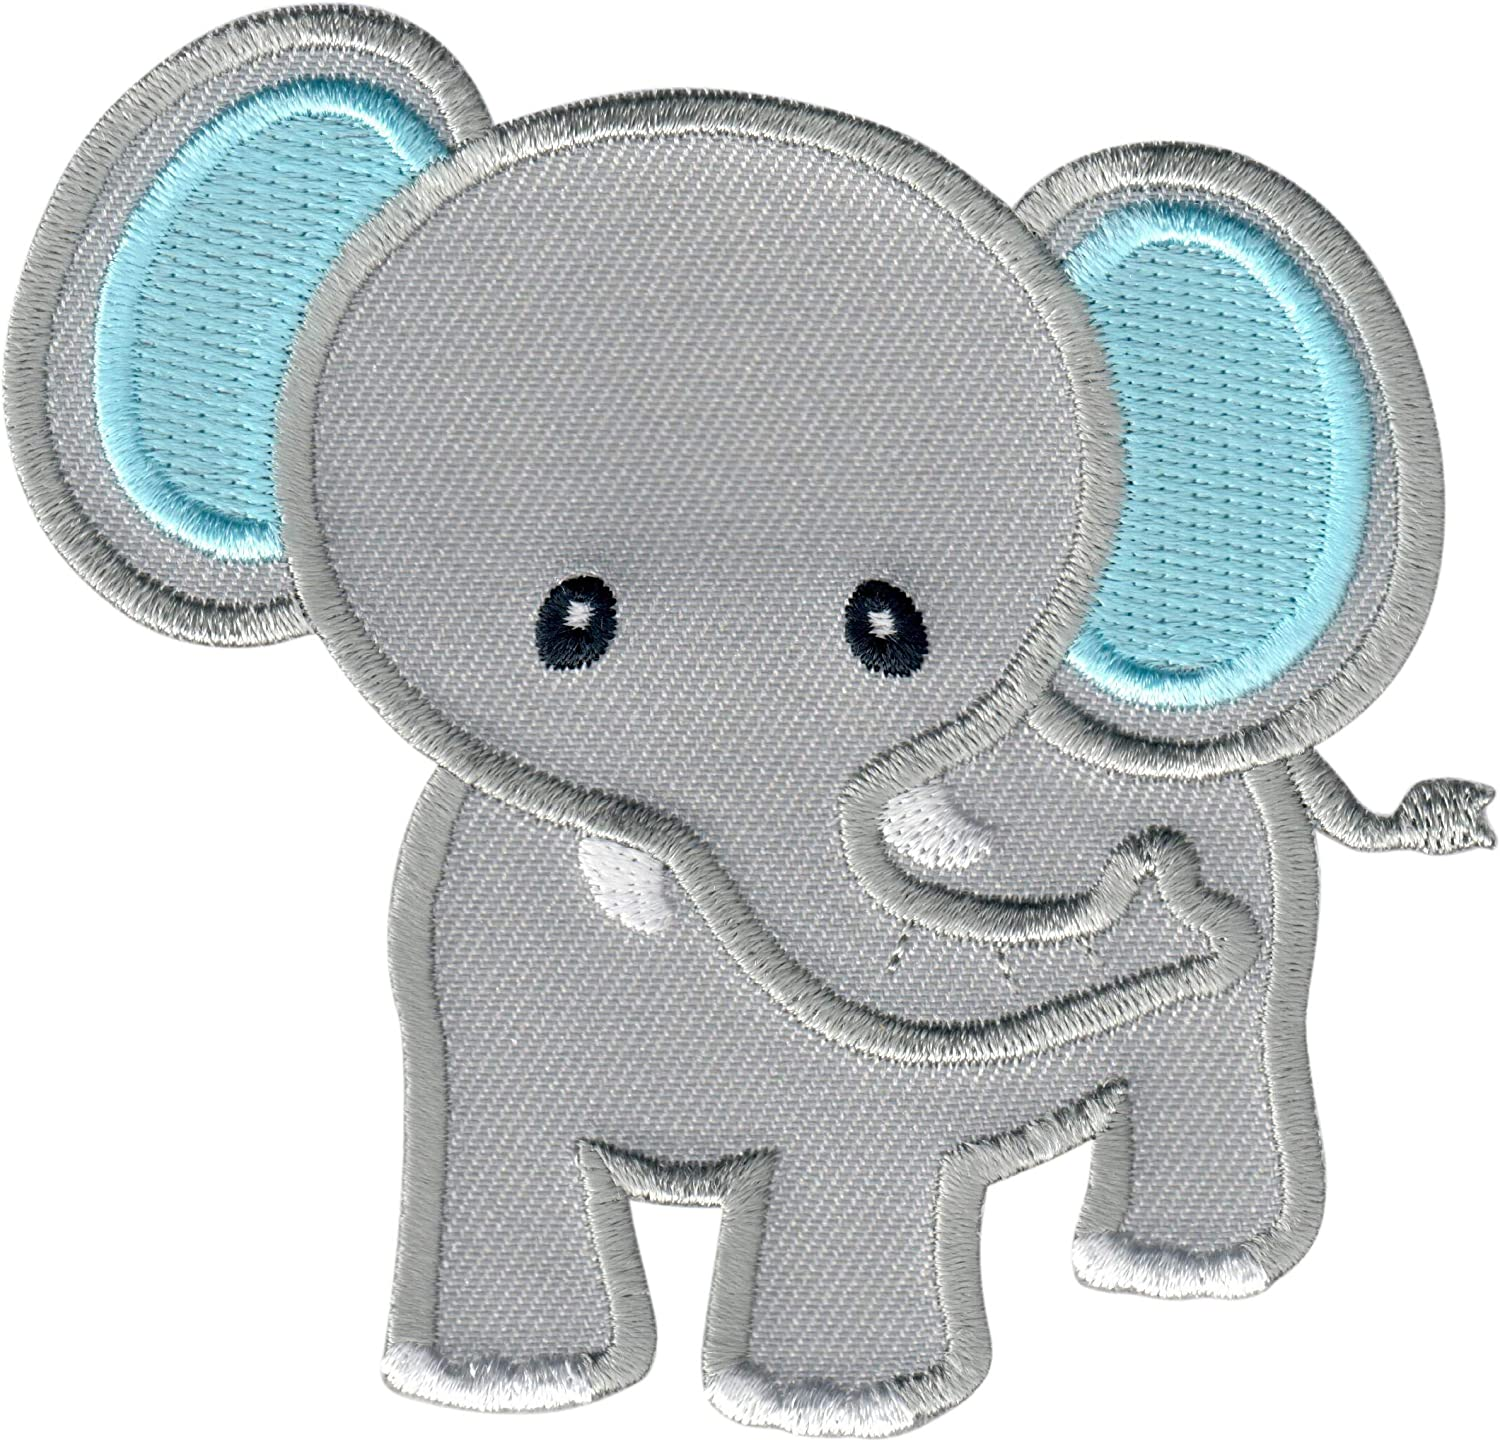 Grey//Blue Embroidered Applique Motif for Children Kids Baby PatchMommy Elephant Patch Iron on//Sew On